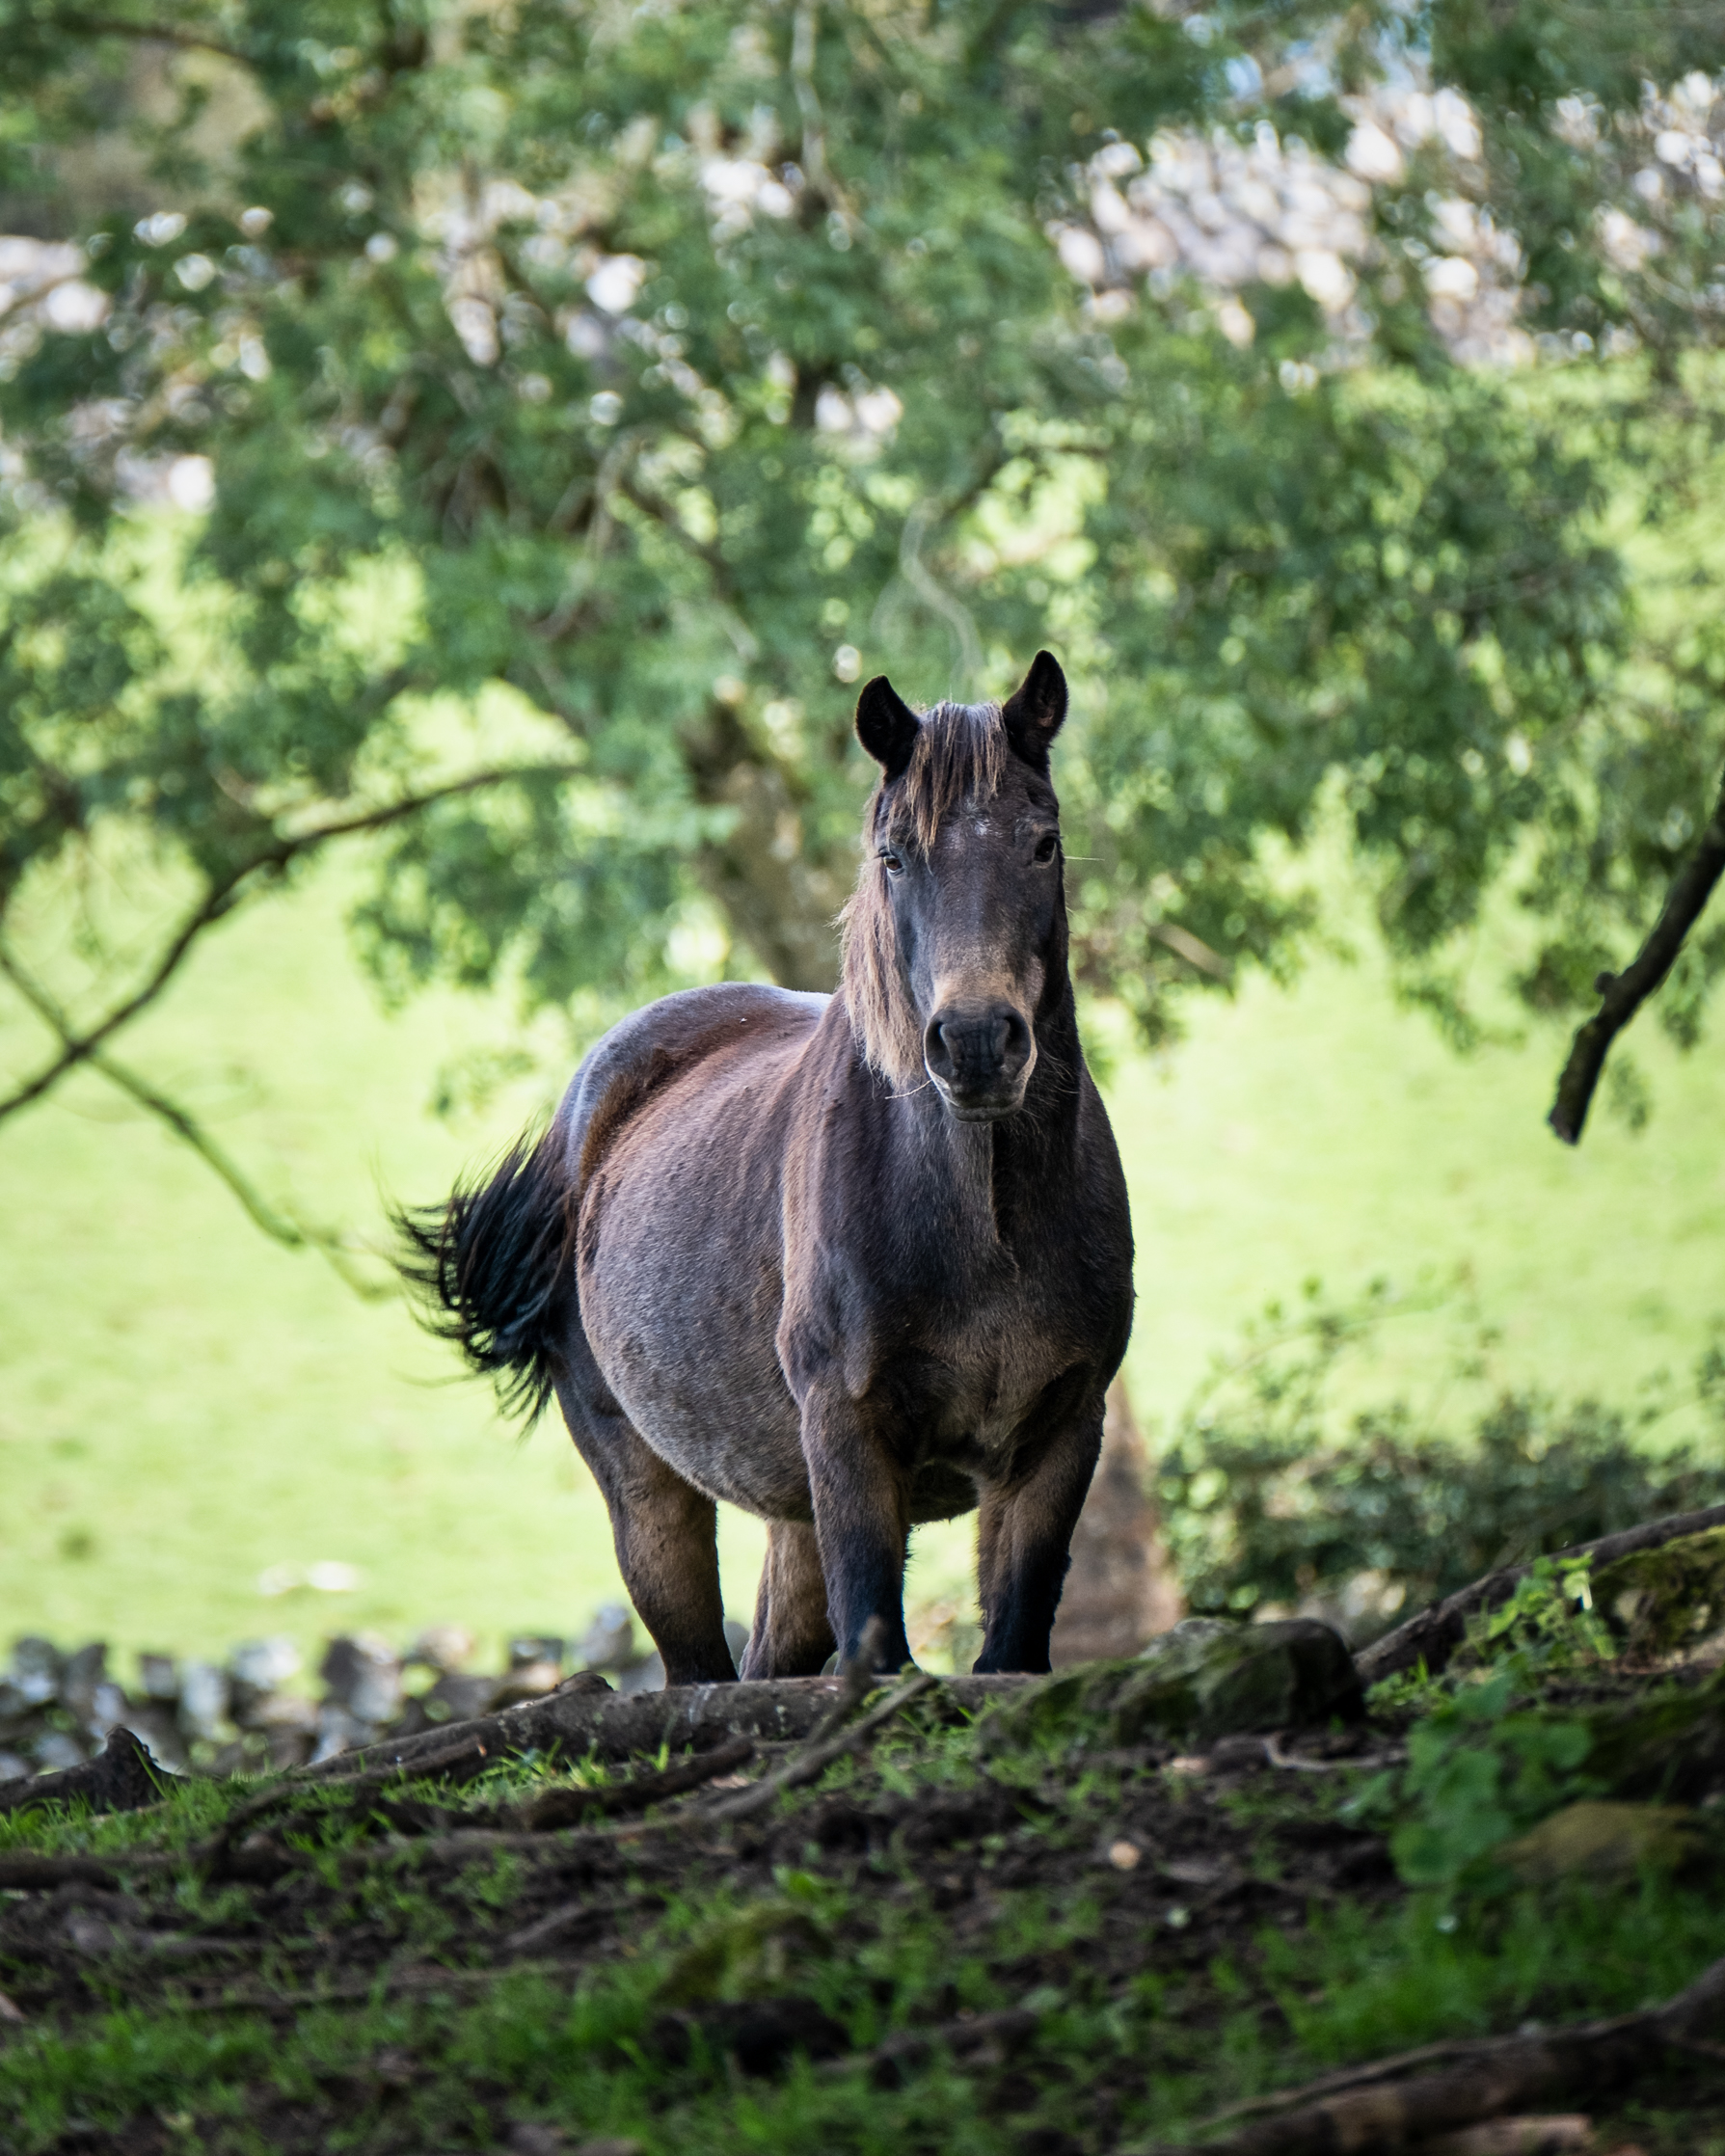 a noble horse standing in trees